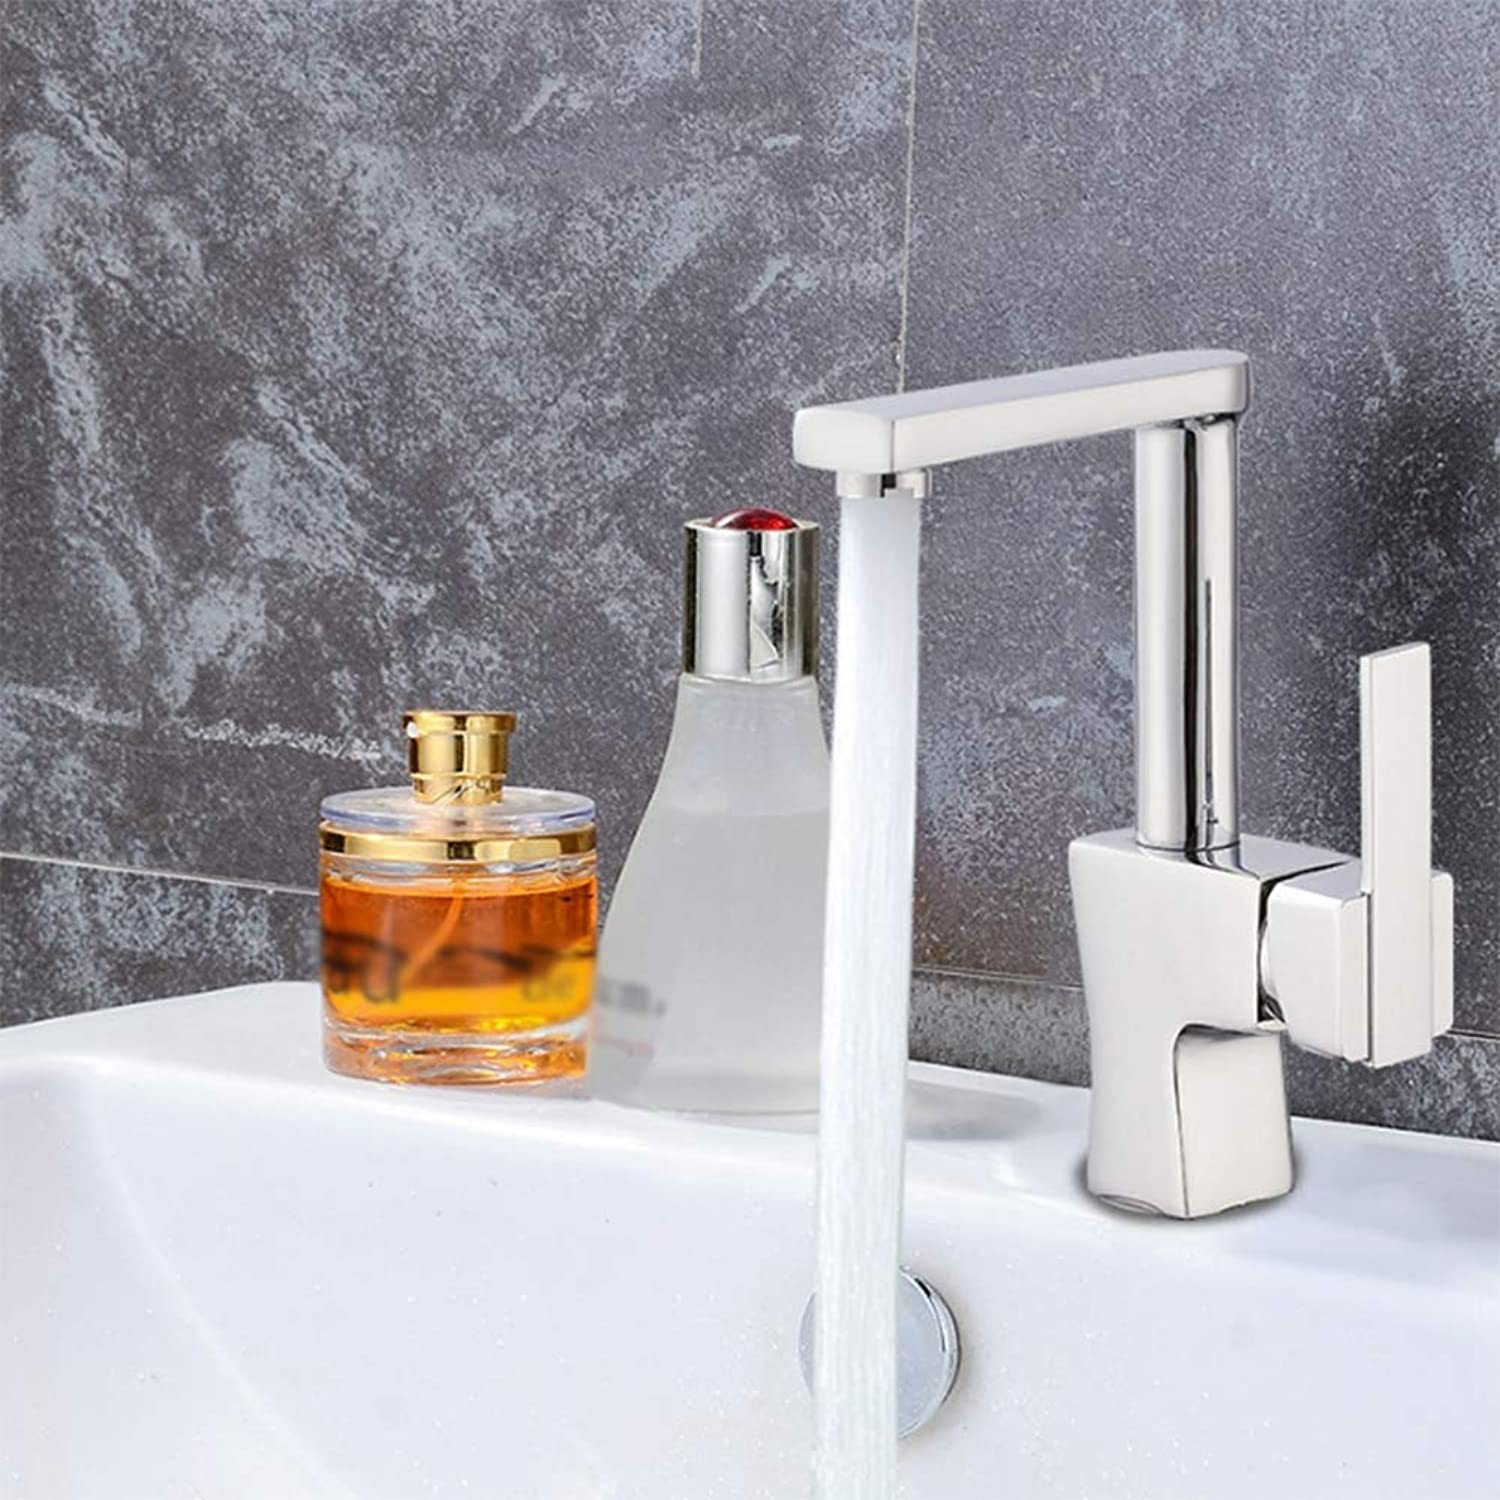 Modern Bathroom taps Copper Seven-Word Square Hot And Cold Water Basin Faucet,Chrome